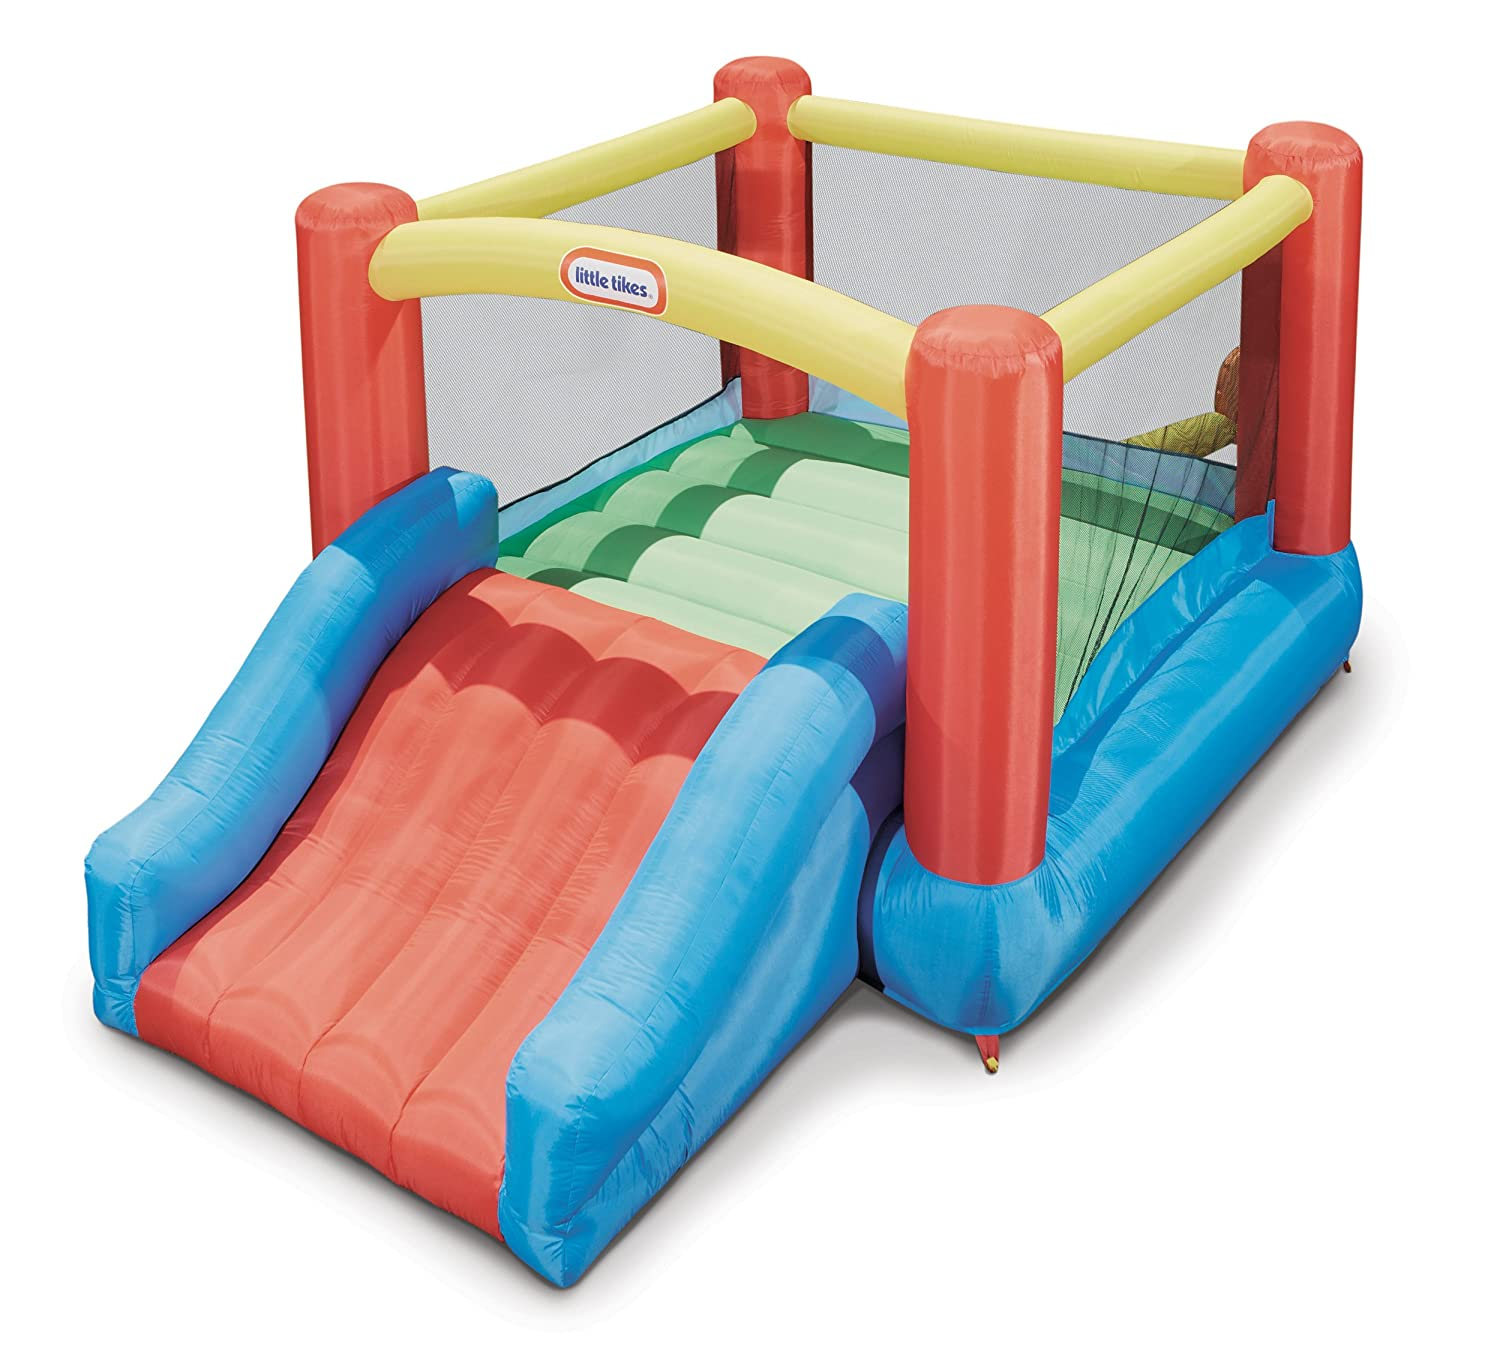 Amazon.com: Little Tikes Jr. Jump \'n Slide Bouncer: Toys & Games